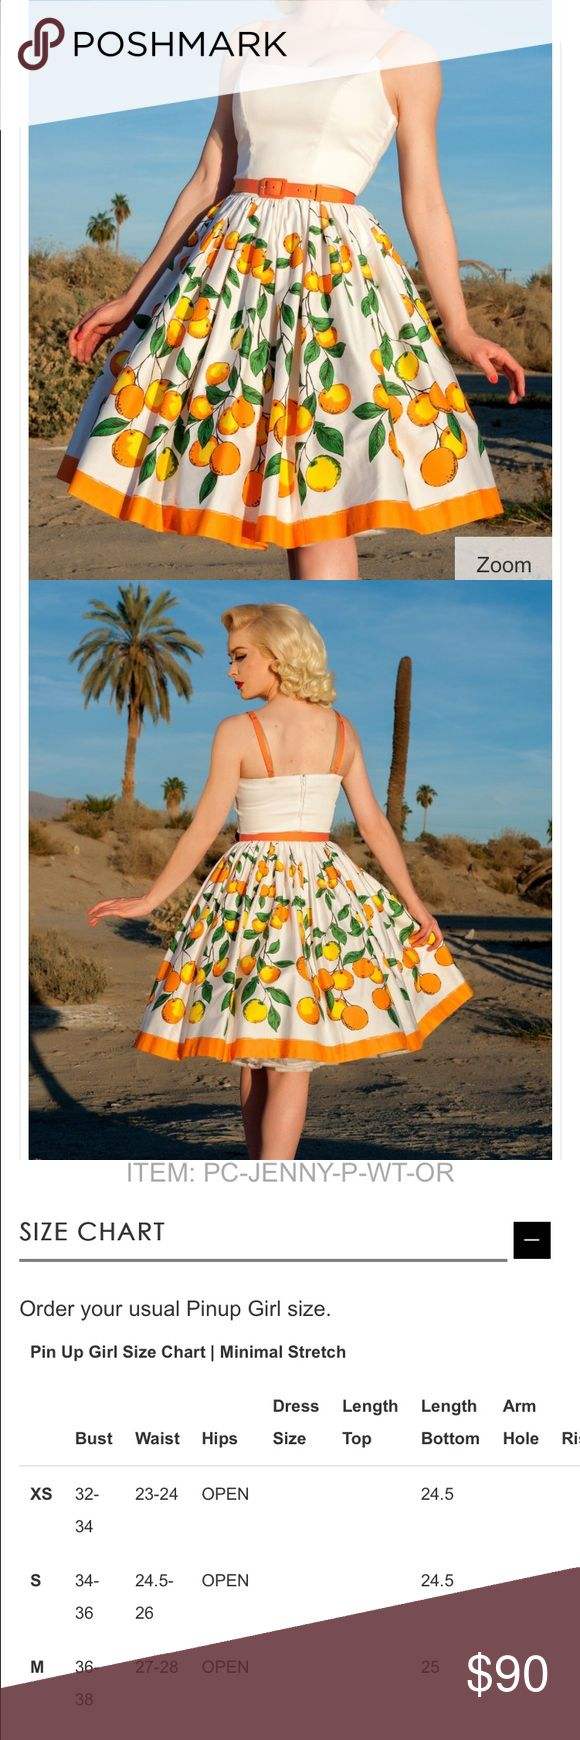 Pinup Girl Clothing Orange Jenny dress. Size: XS, worn twice. Great condition! Needs to go to a nice loving home *comes with  belt Pinup girl clothing  Dresses